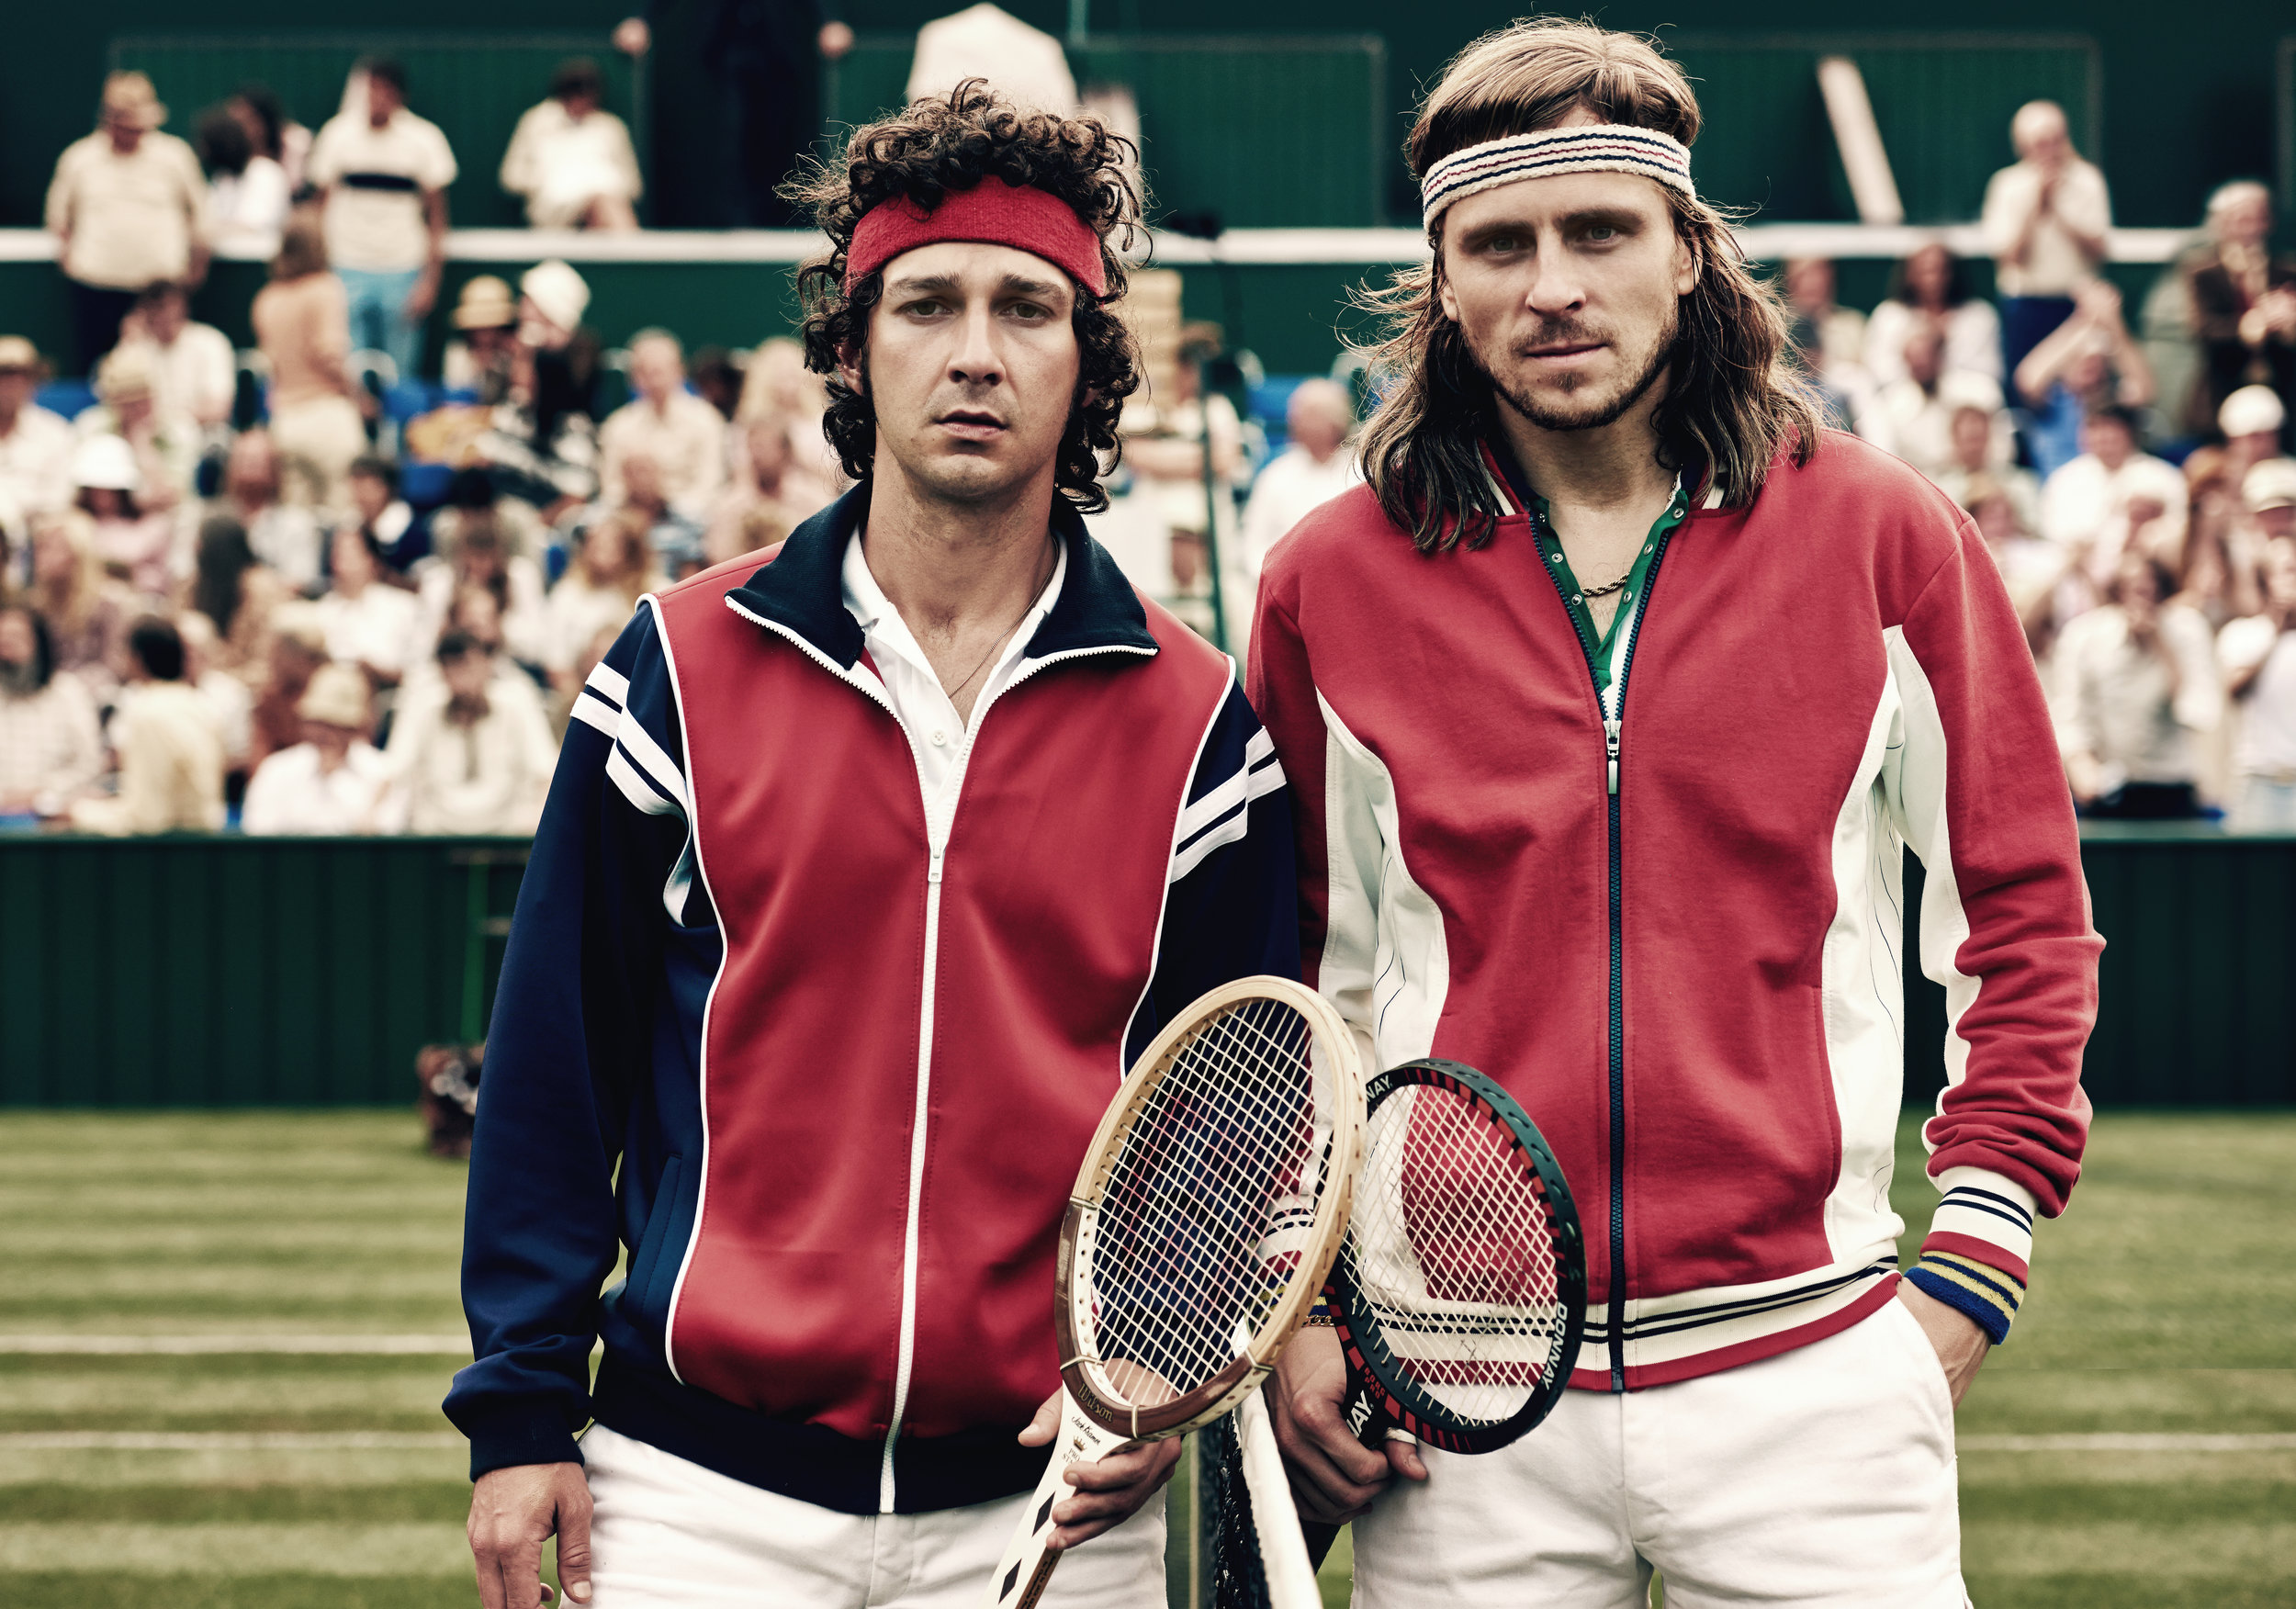 Shia LaBeouf and Sverrir Gudnason as John McEnroe and Bjorn Borg